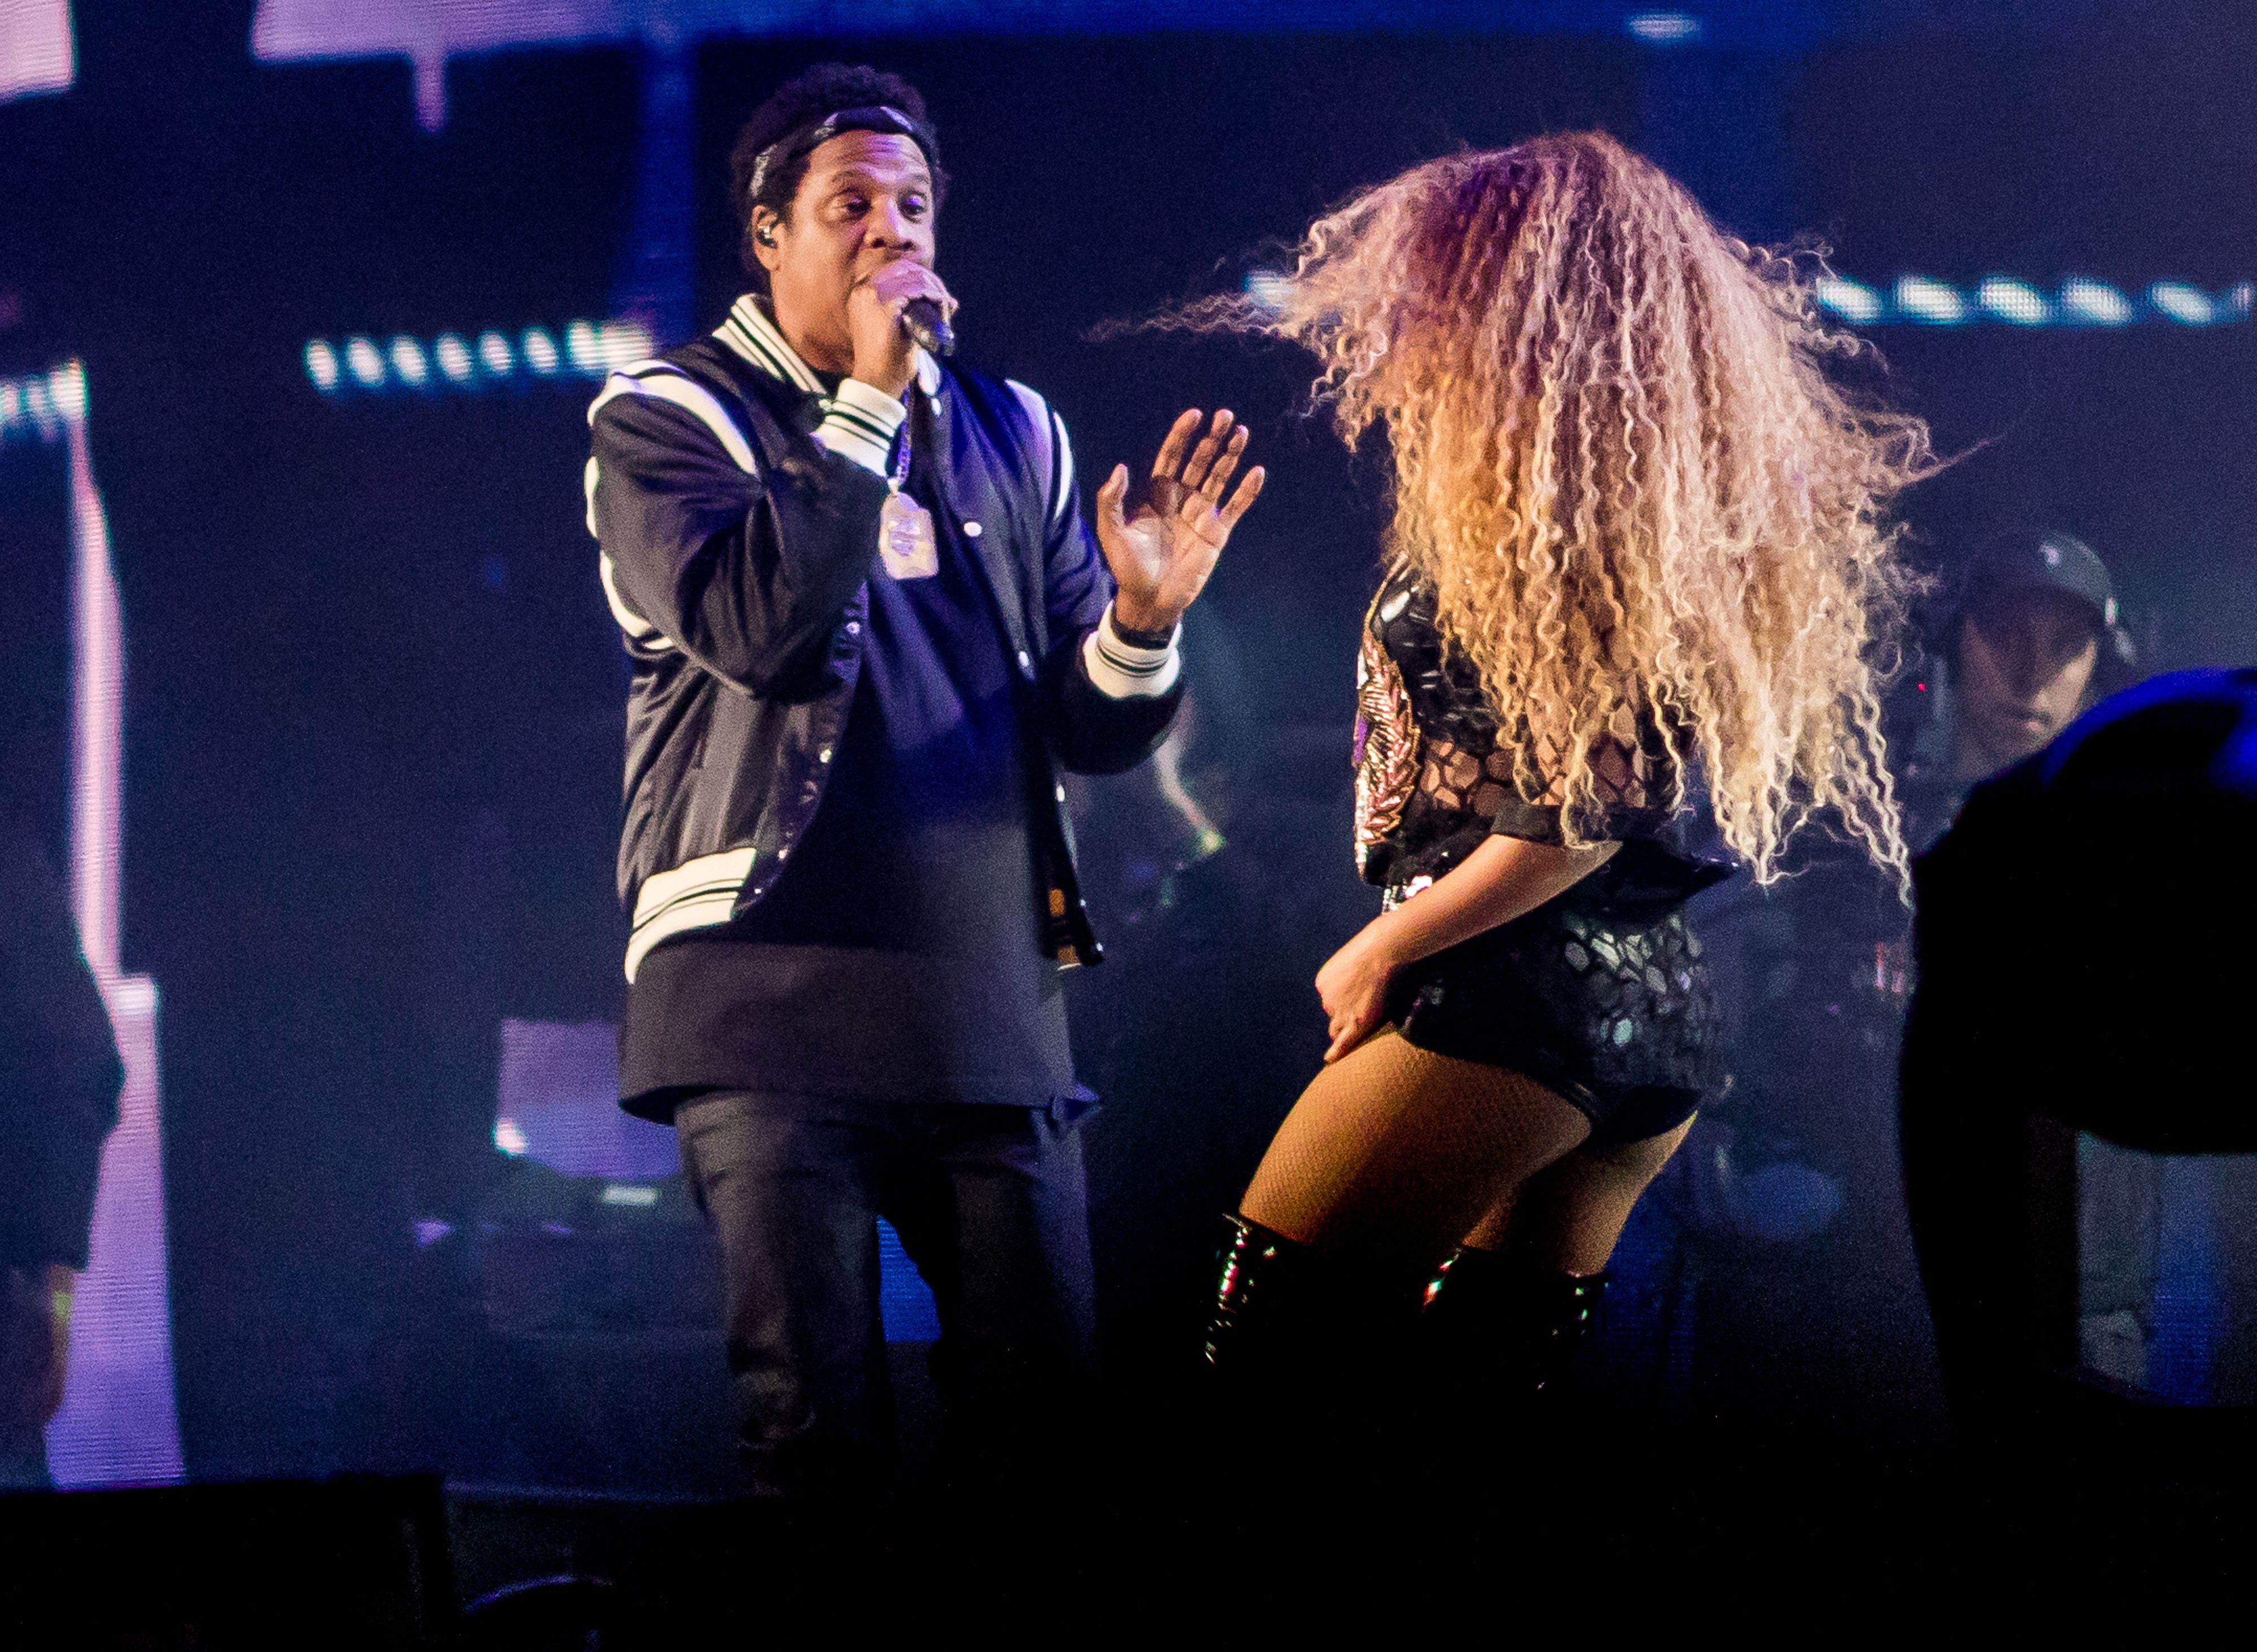 Beyonce performs with Jay-Z Saturday during the Coachella Music and Arts Festival in Indio, Calif